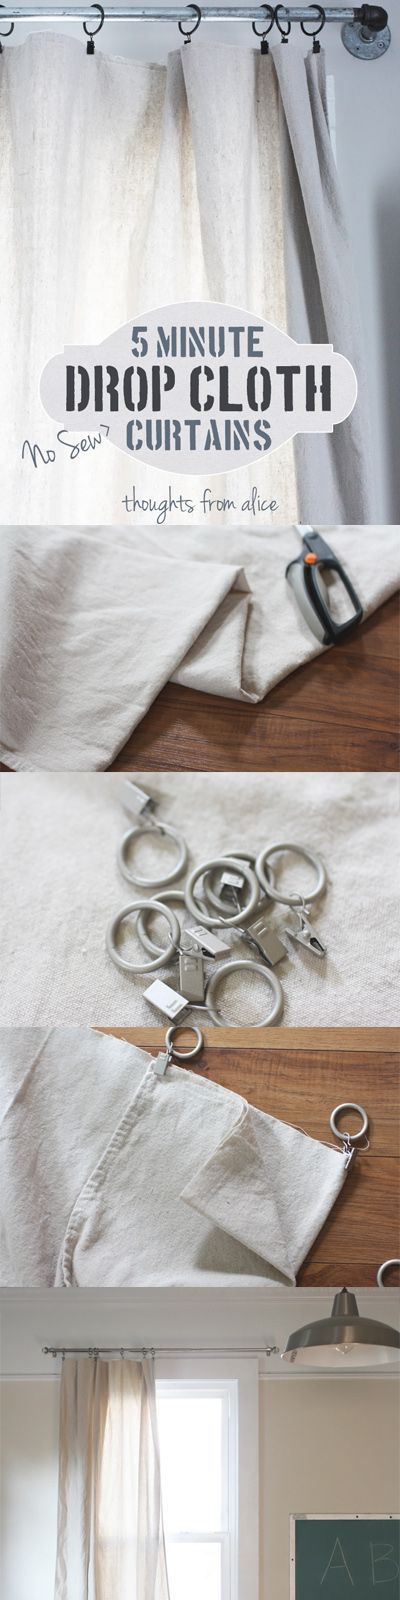 5 Minute No-Sew Drop Cloth Curtain Tutorial - Click through for full instructions and sources for these specific drop cloths and clip rings at Thought from Alice.